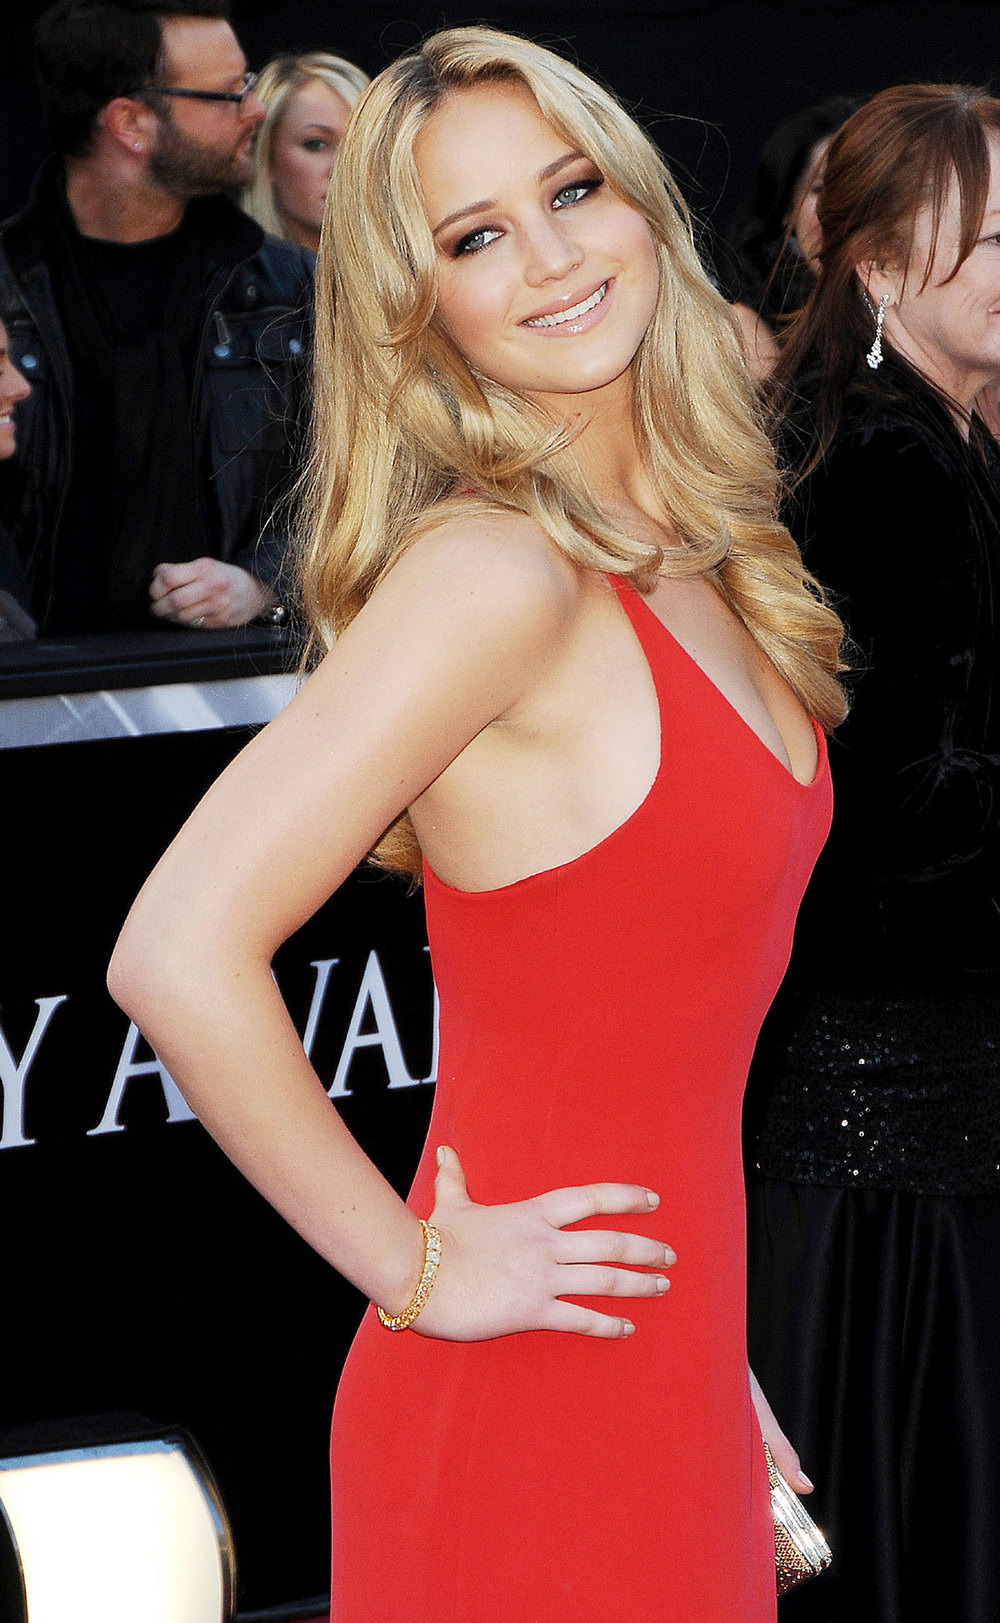 Jennifer-Lawrence-2011-oscars.jpg